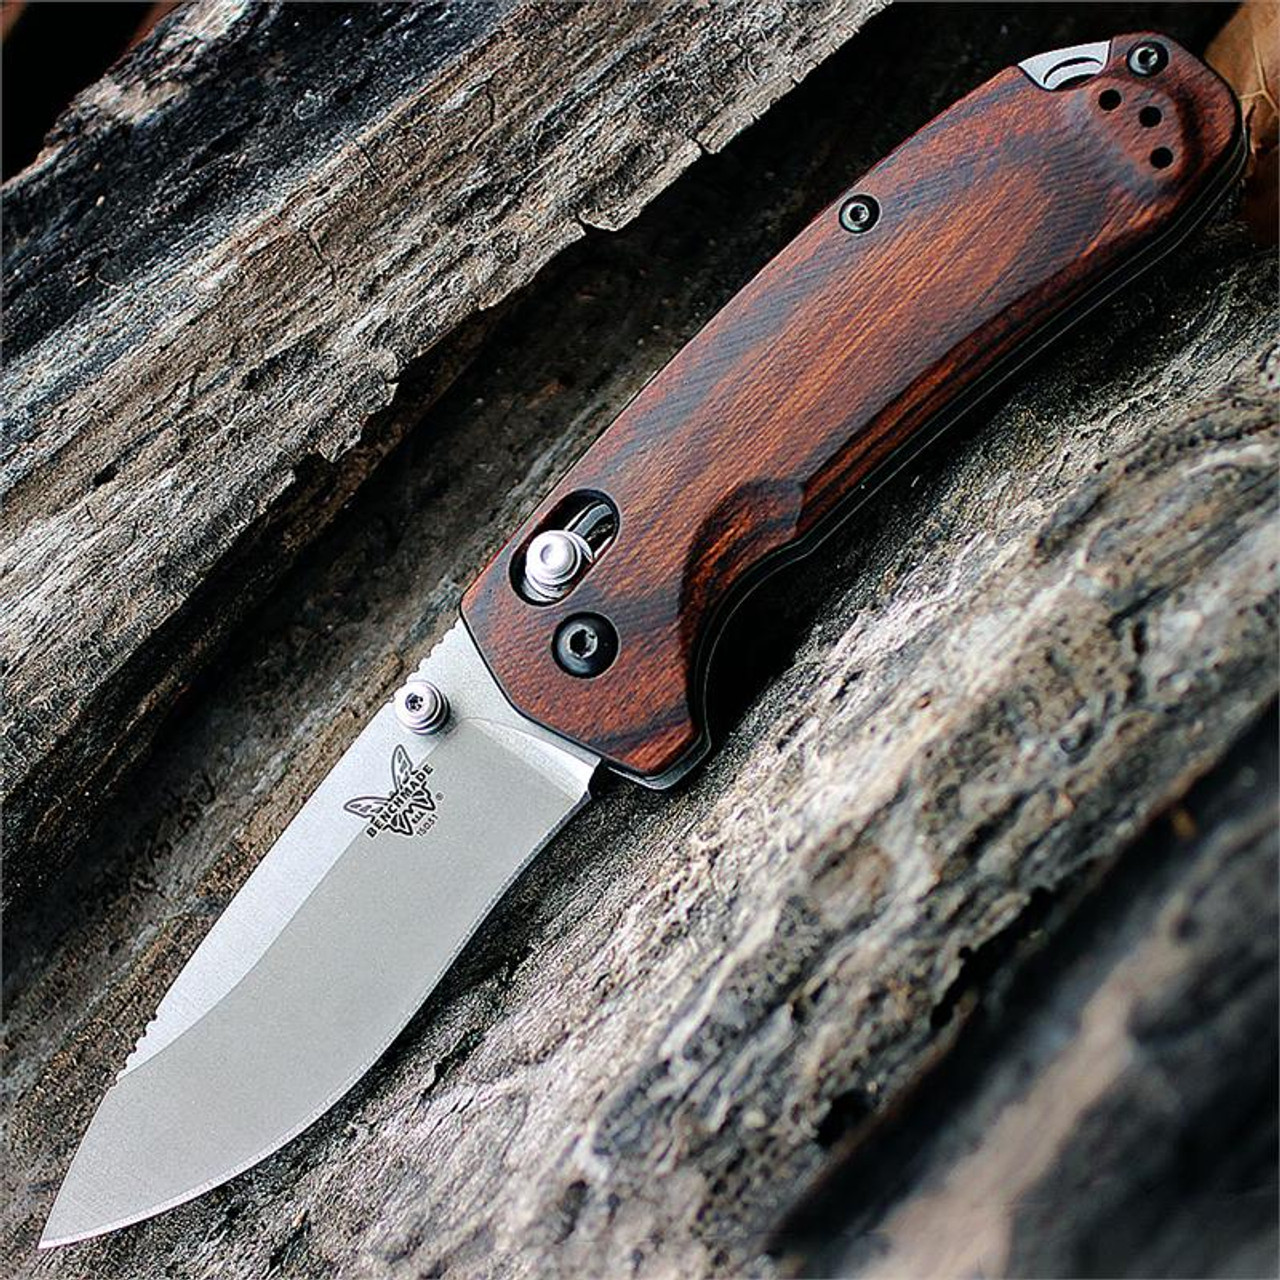 Benchmade HUNT North Fork Axis-lock Folder, 15031-2, 2.97 in. CPM-S30V Blade, Wood Handle